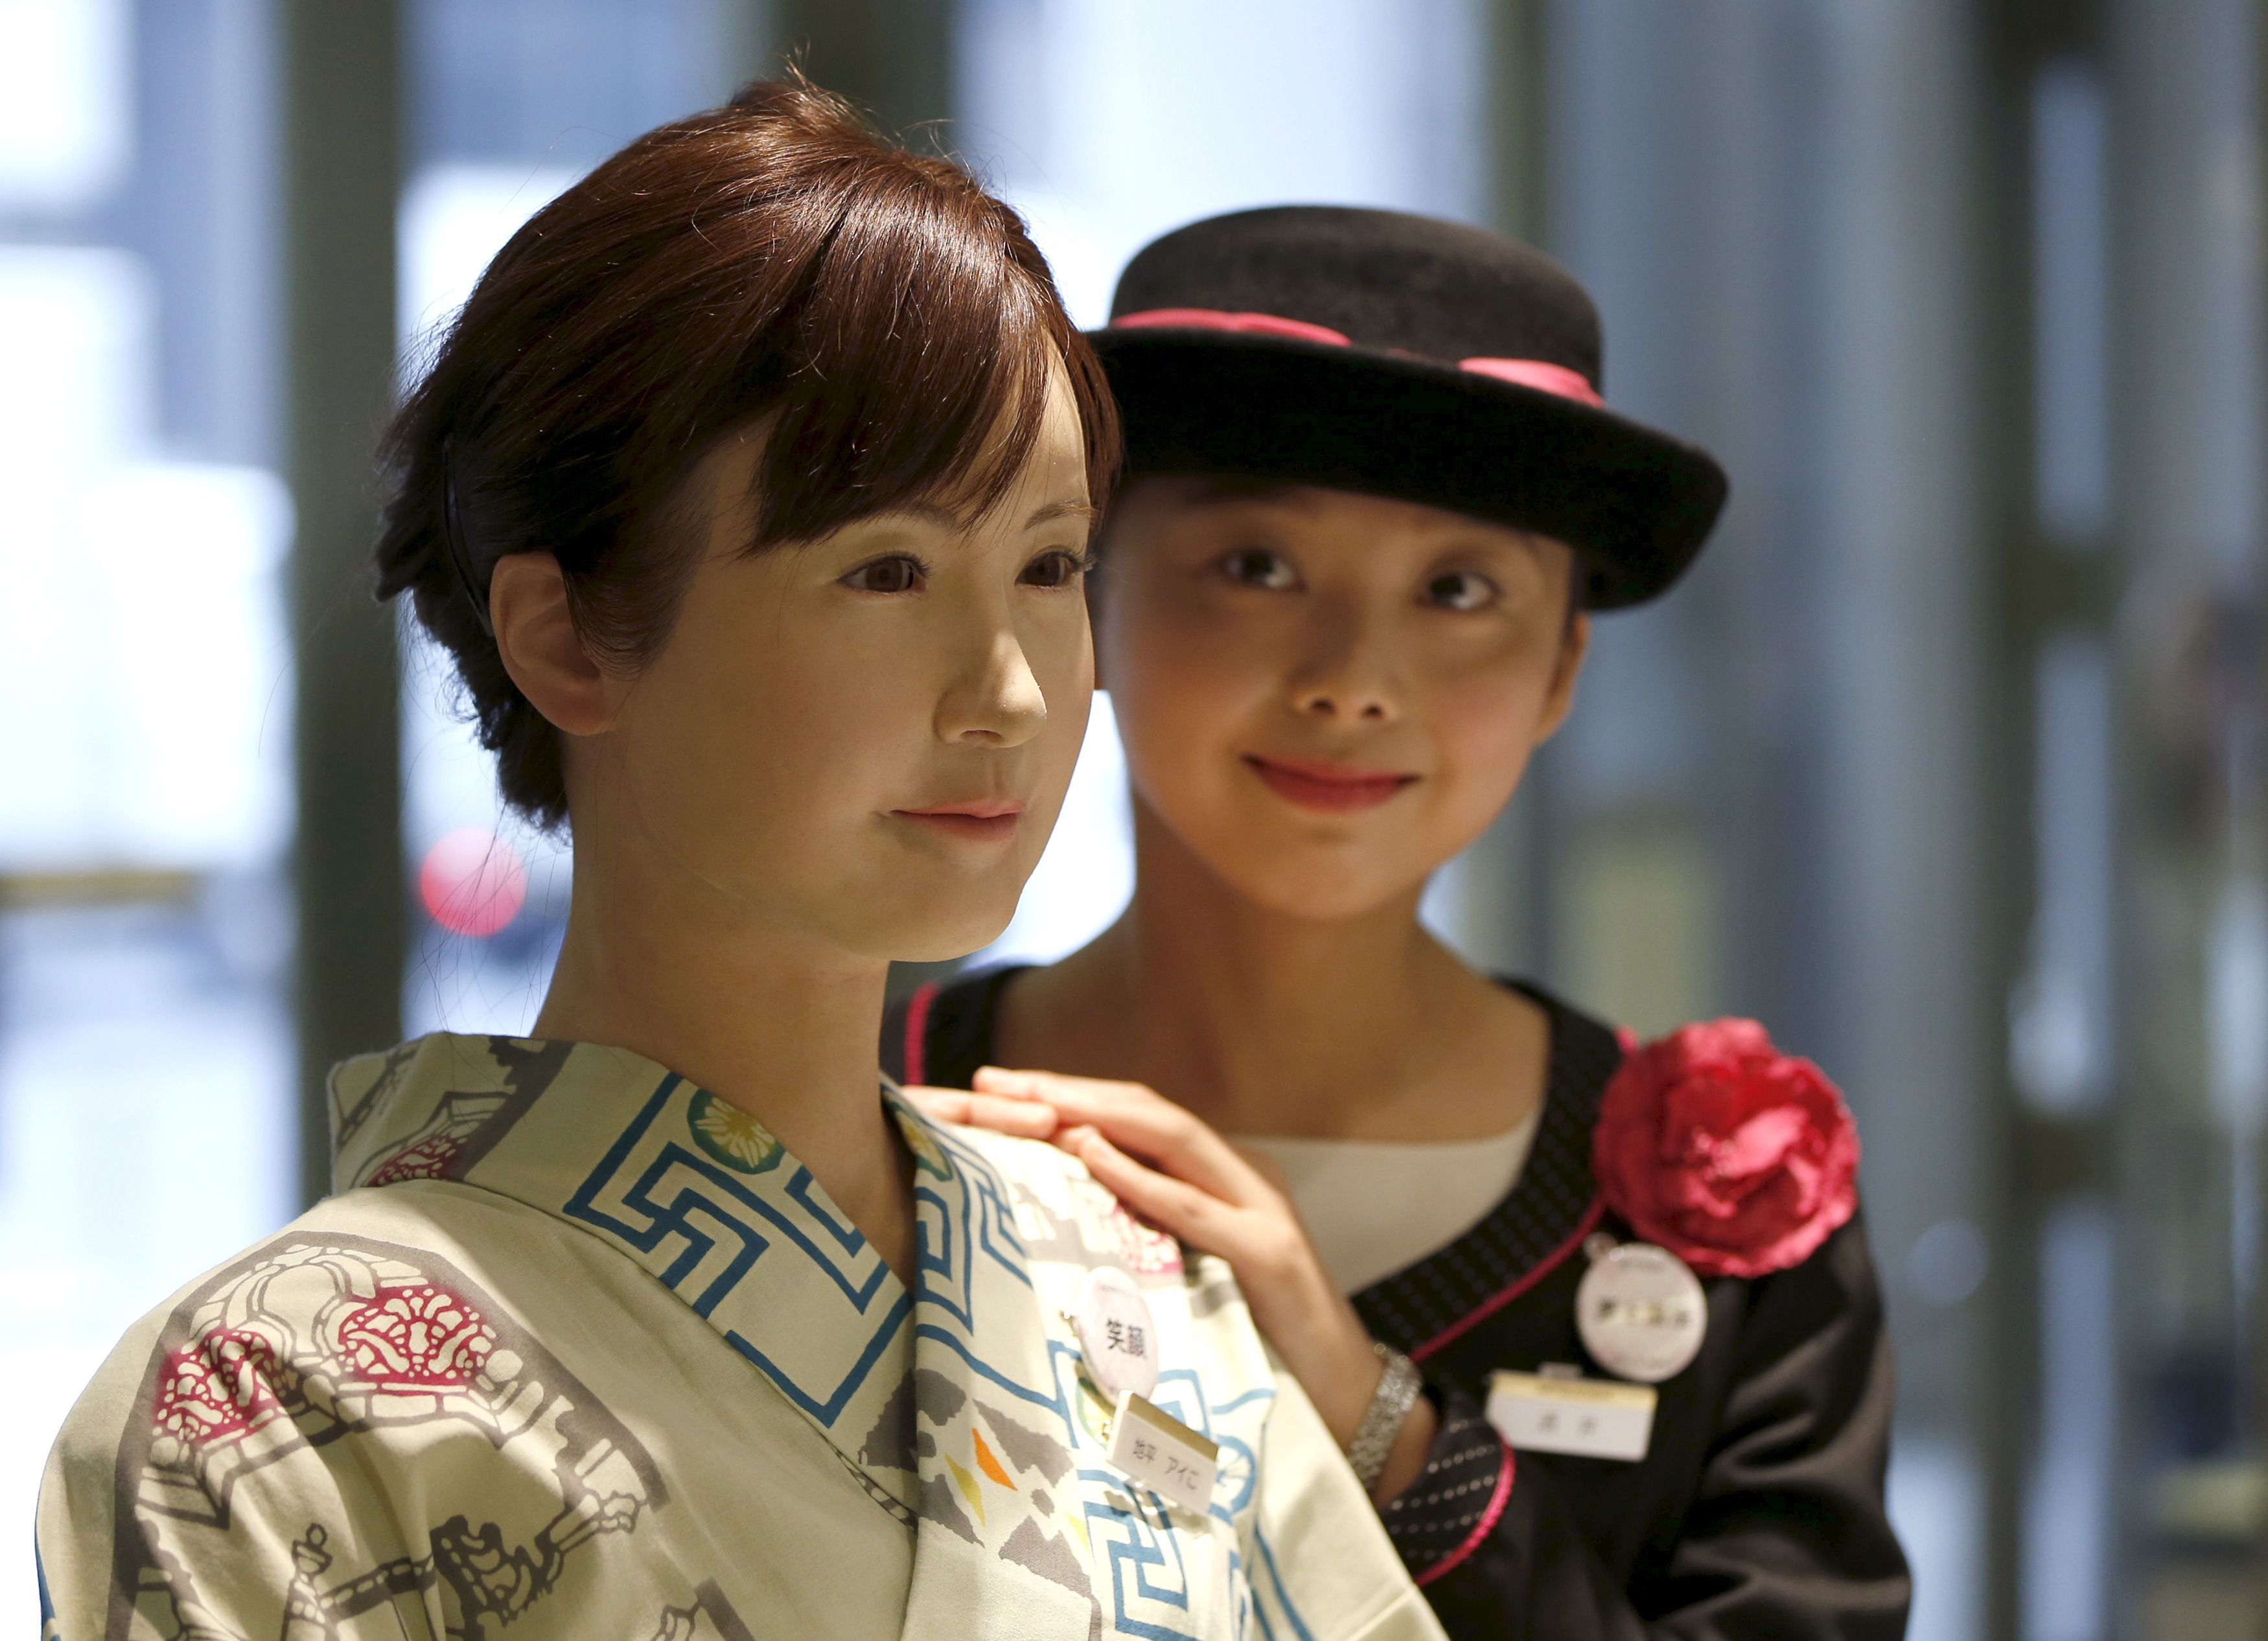 Robot women in Asia now have human stylists(画像あり)